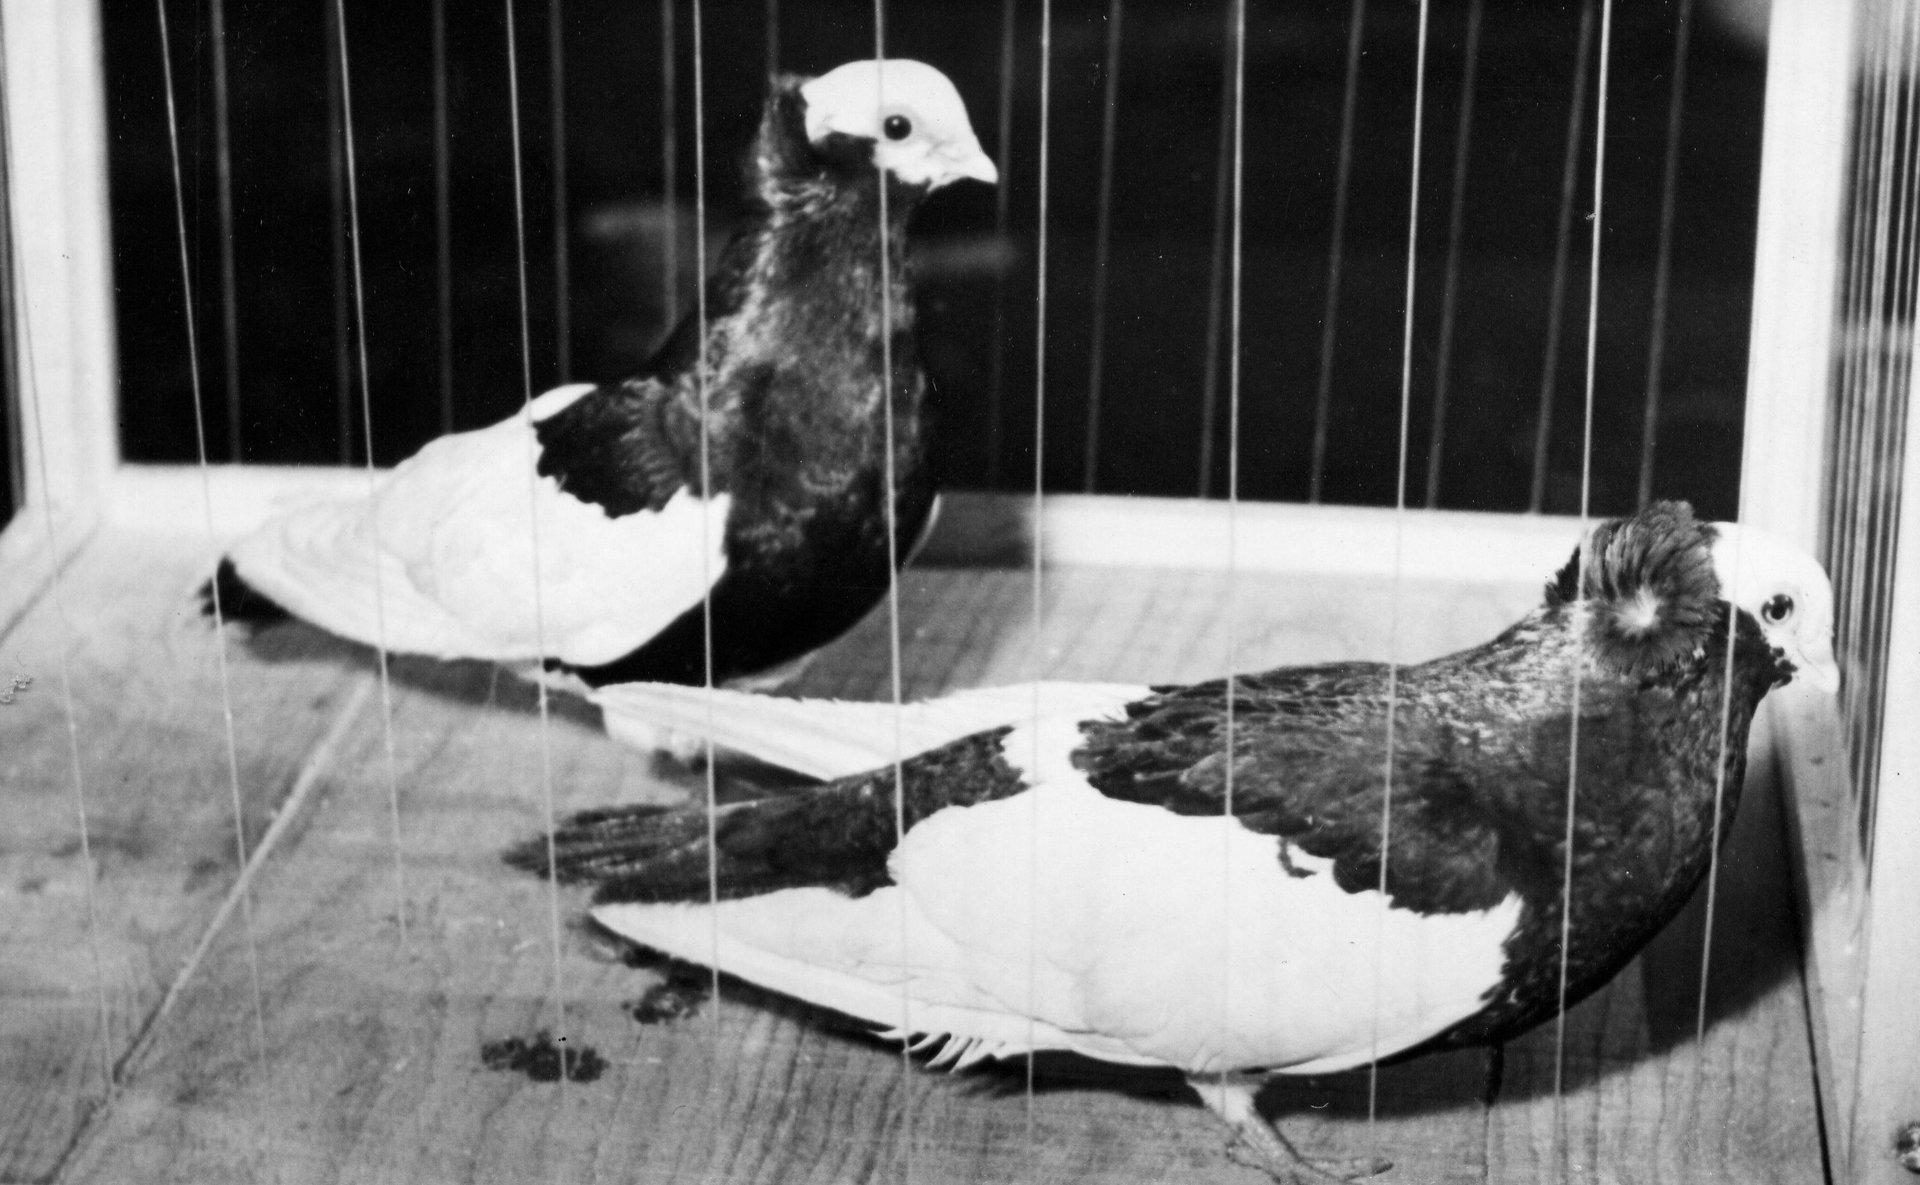 Petra Feriancová, Series Creator – From the Archive of O. Ferianc, New Breeds 1949-1952, 2008, (67/112)